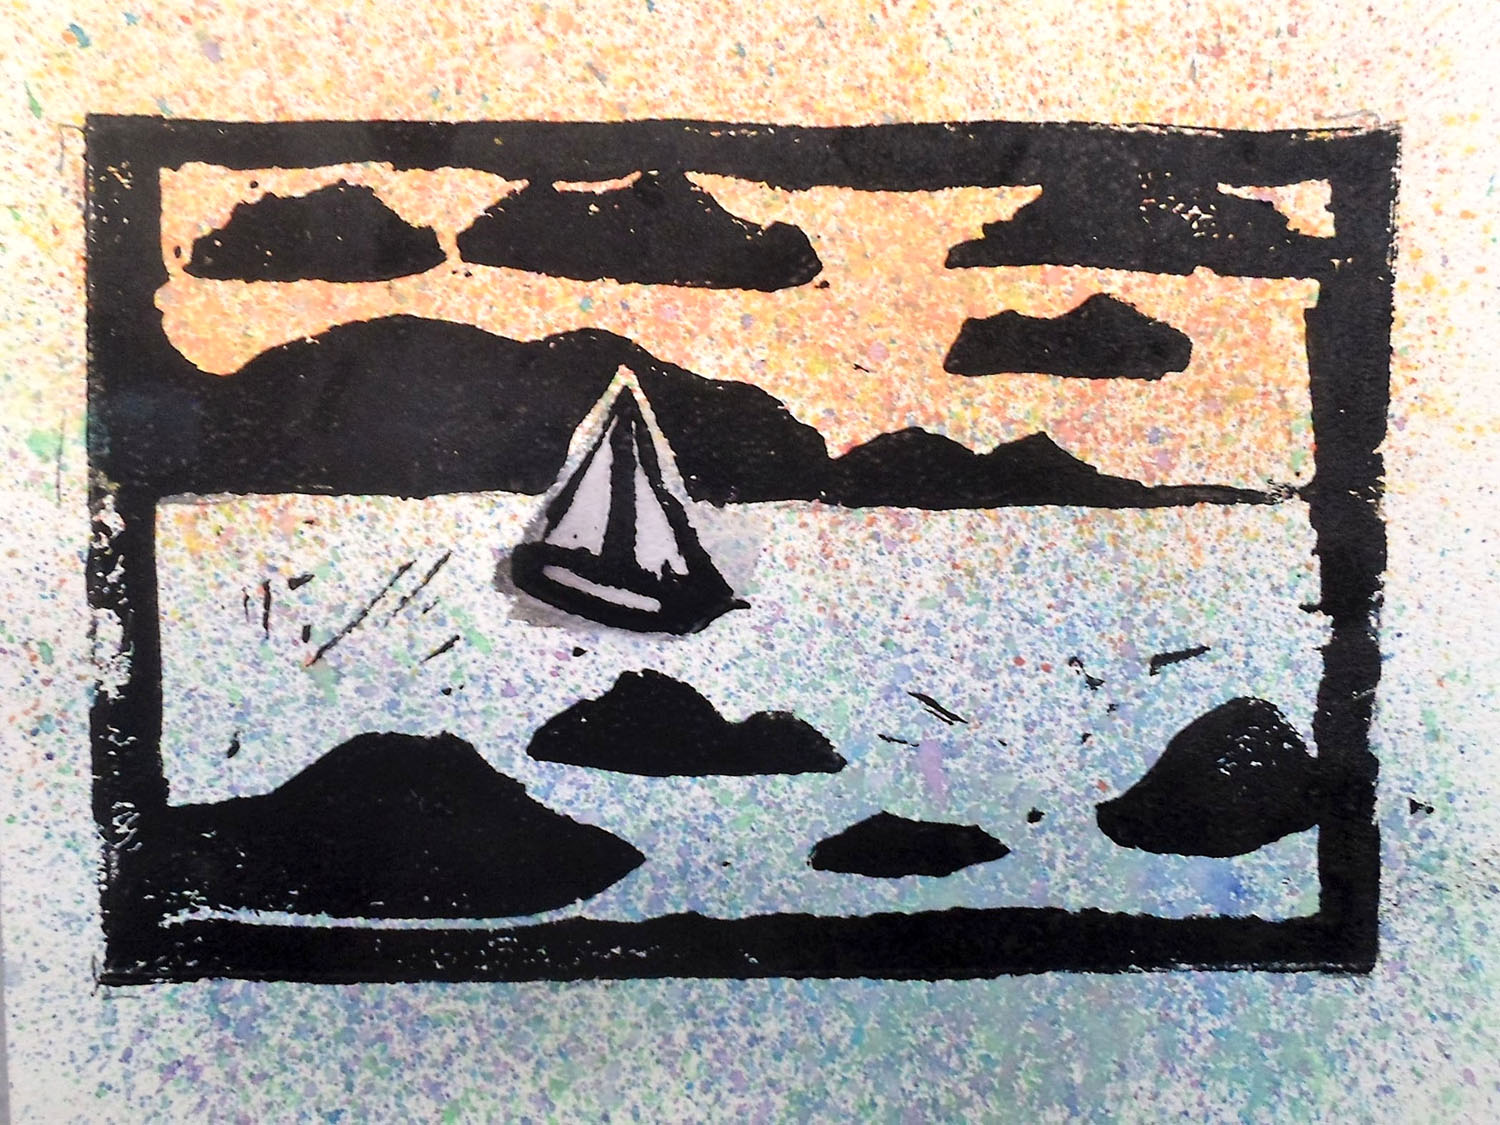 Landscape of a sailboat, which looks like it is a stamp or screen print.